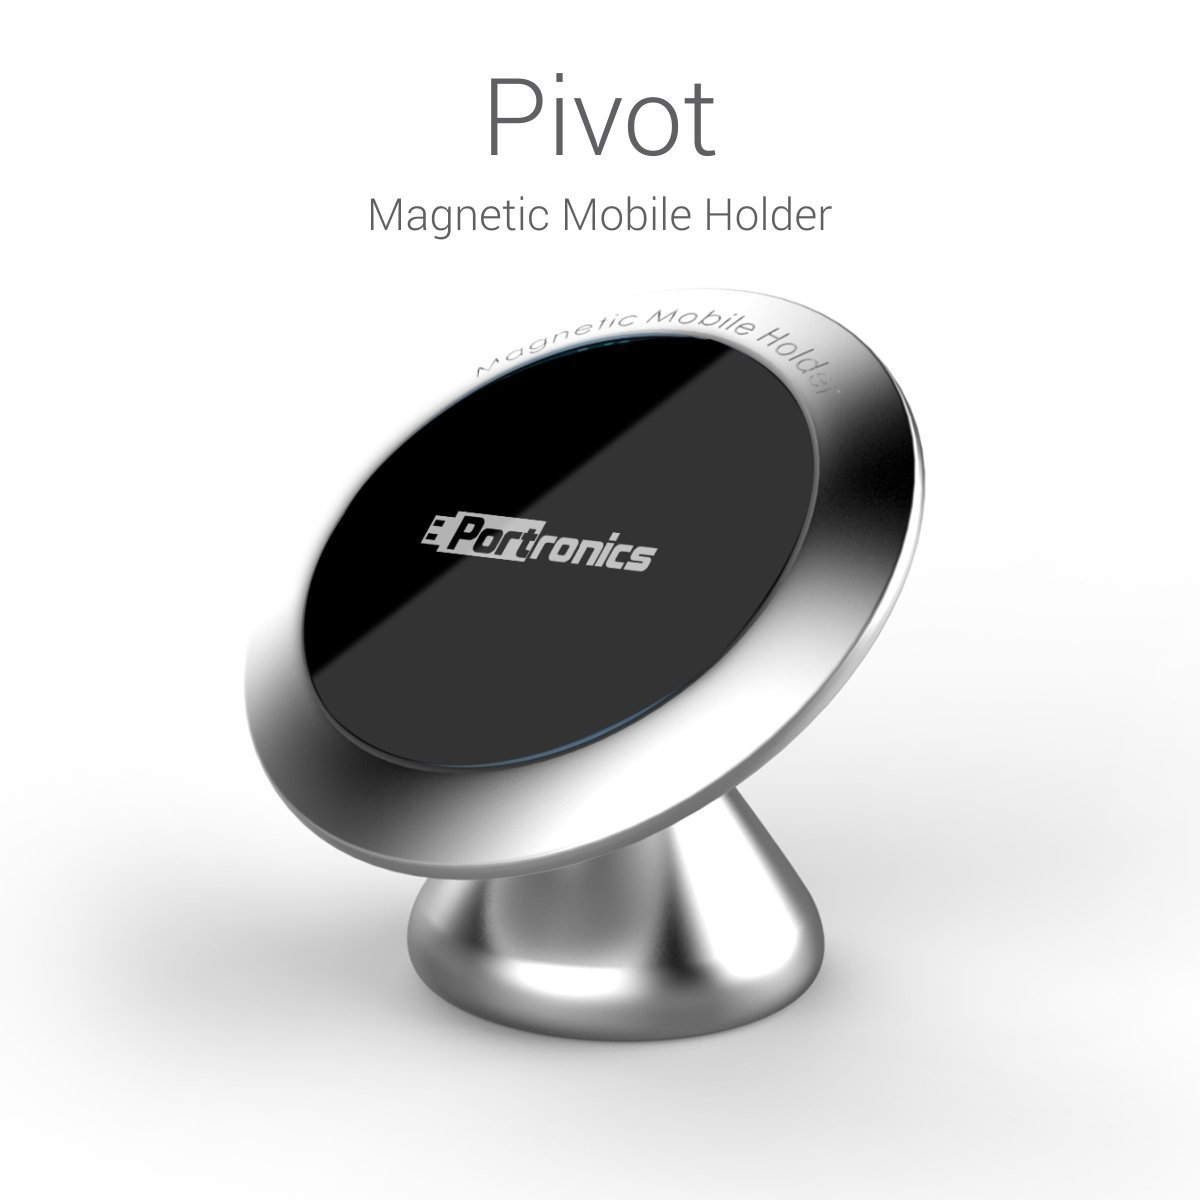 Portronics Pivot POR 625 Mobile Holder